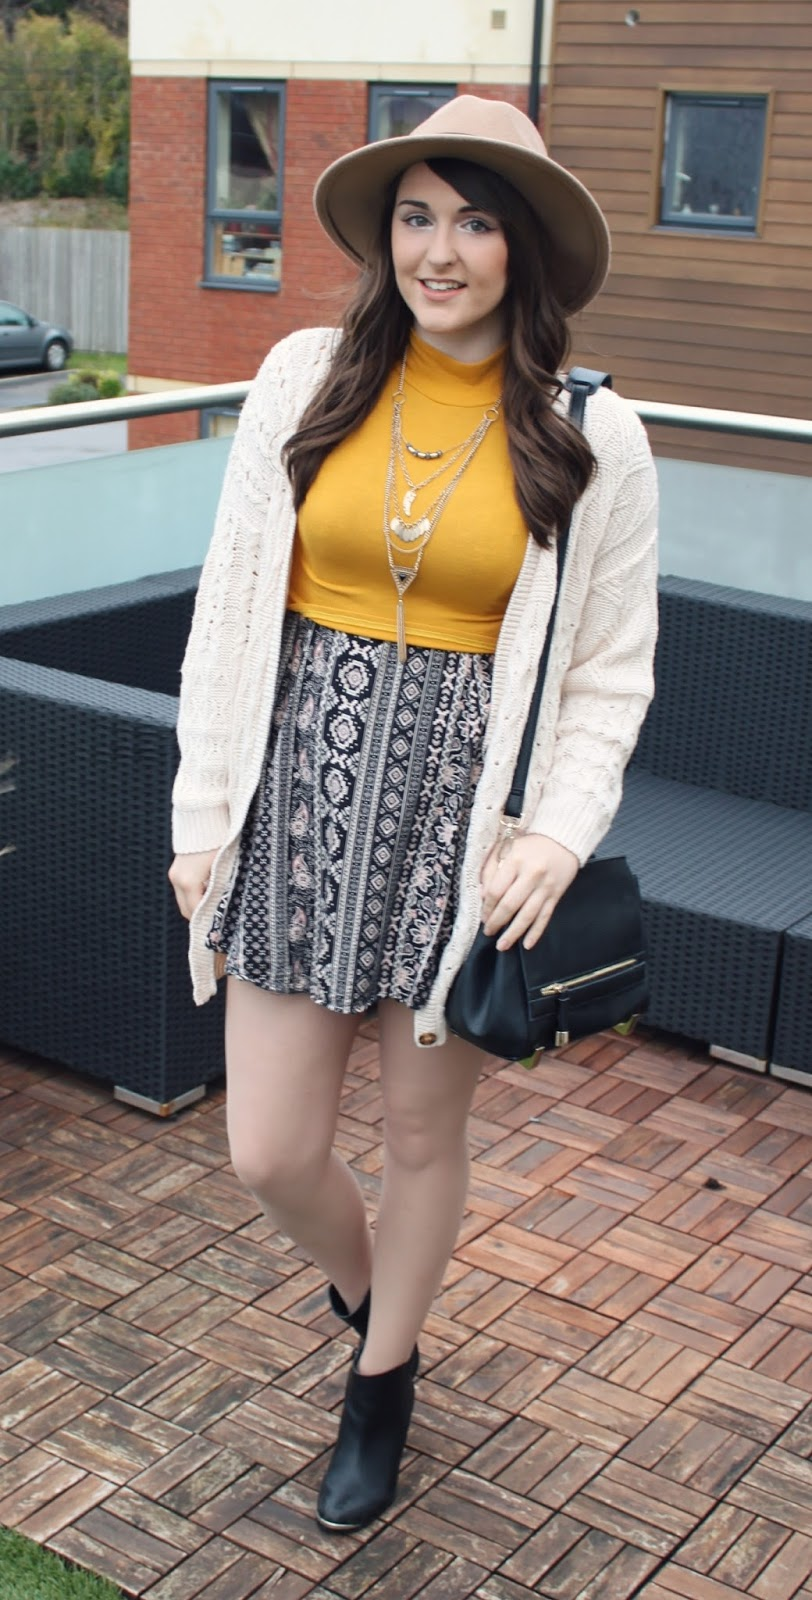 mustard-yellow-missguided-top-and-aztec-glamorous-dress